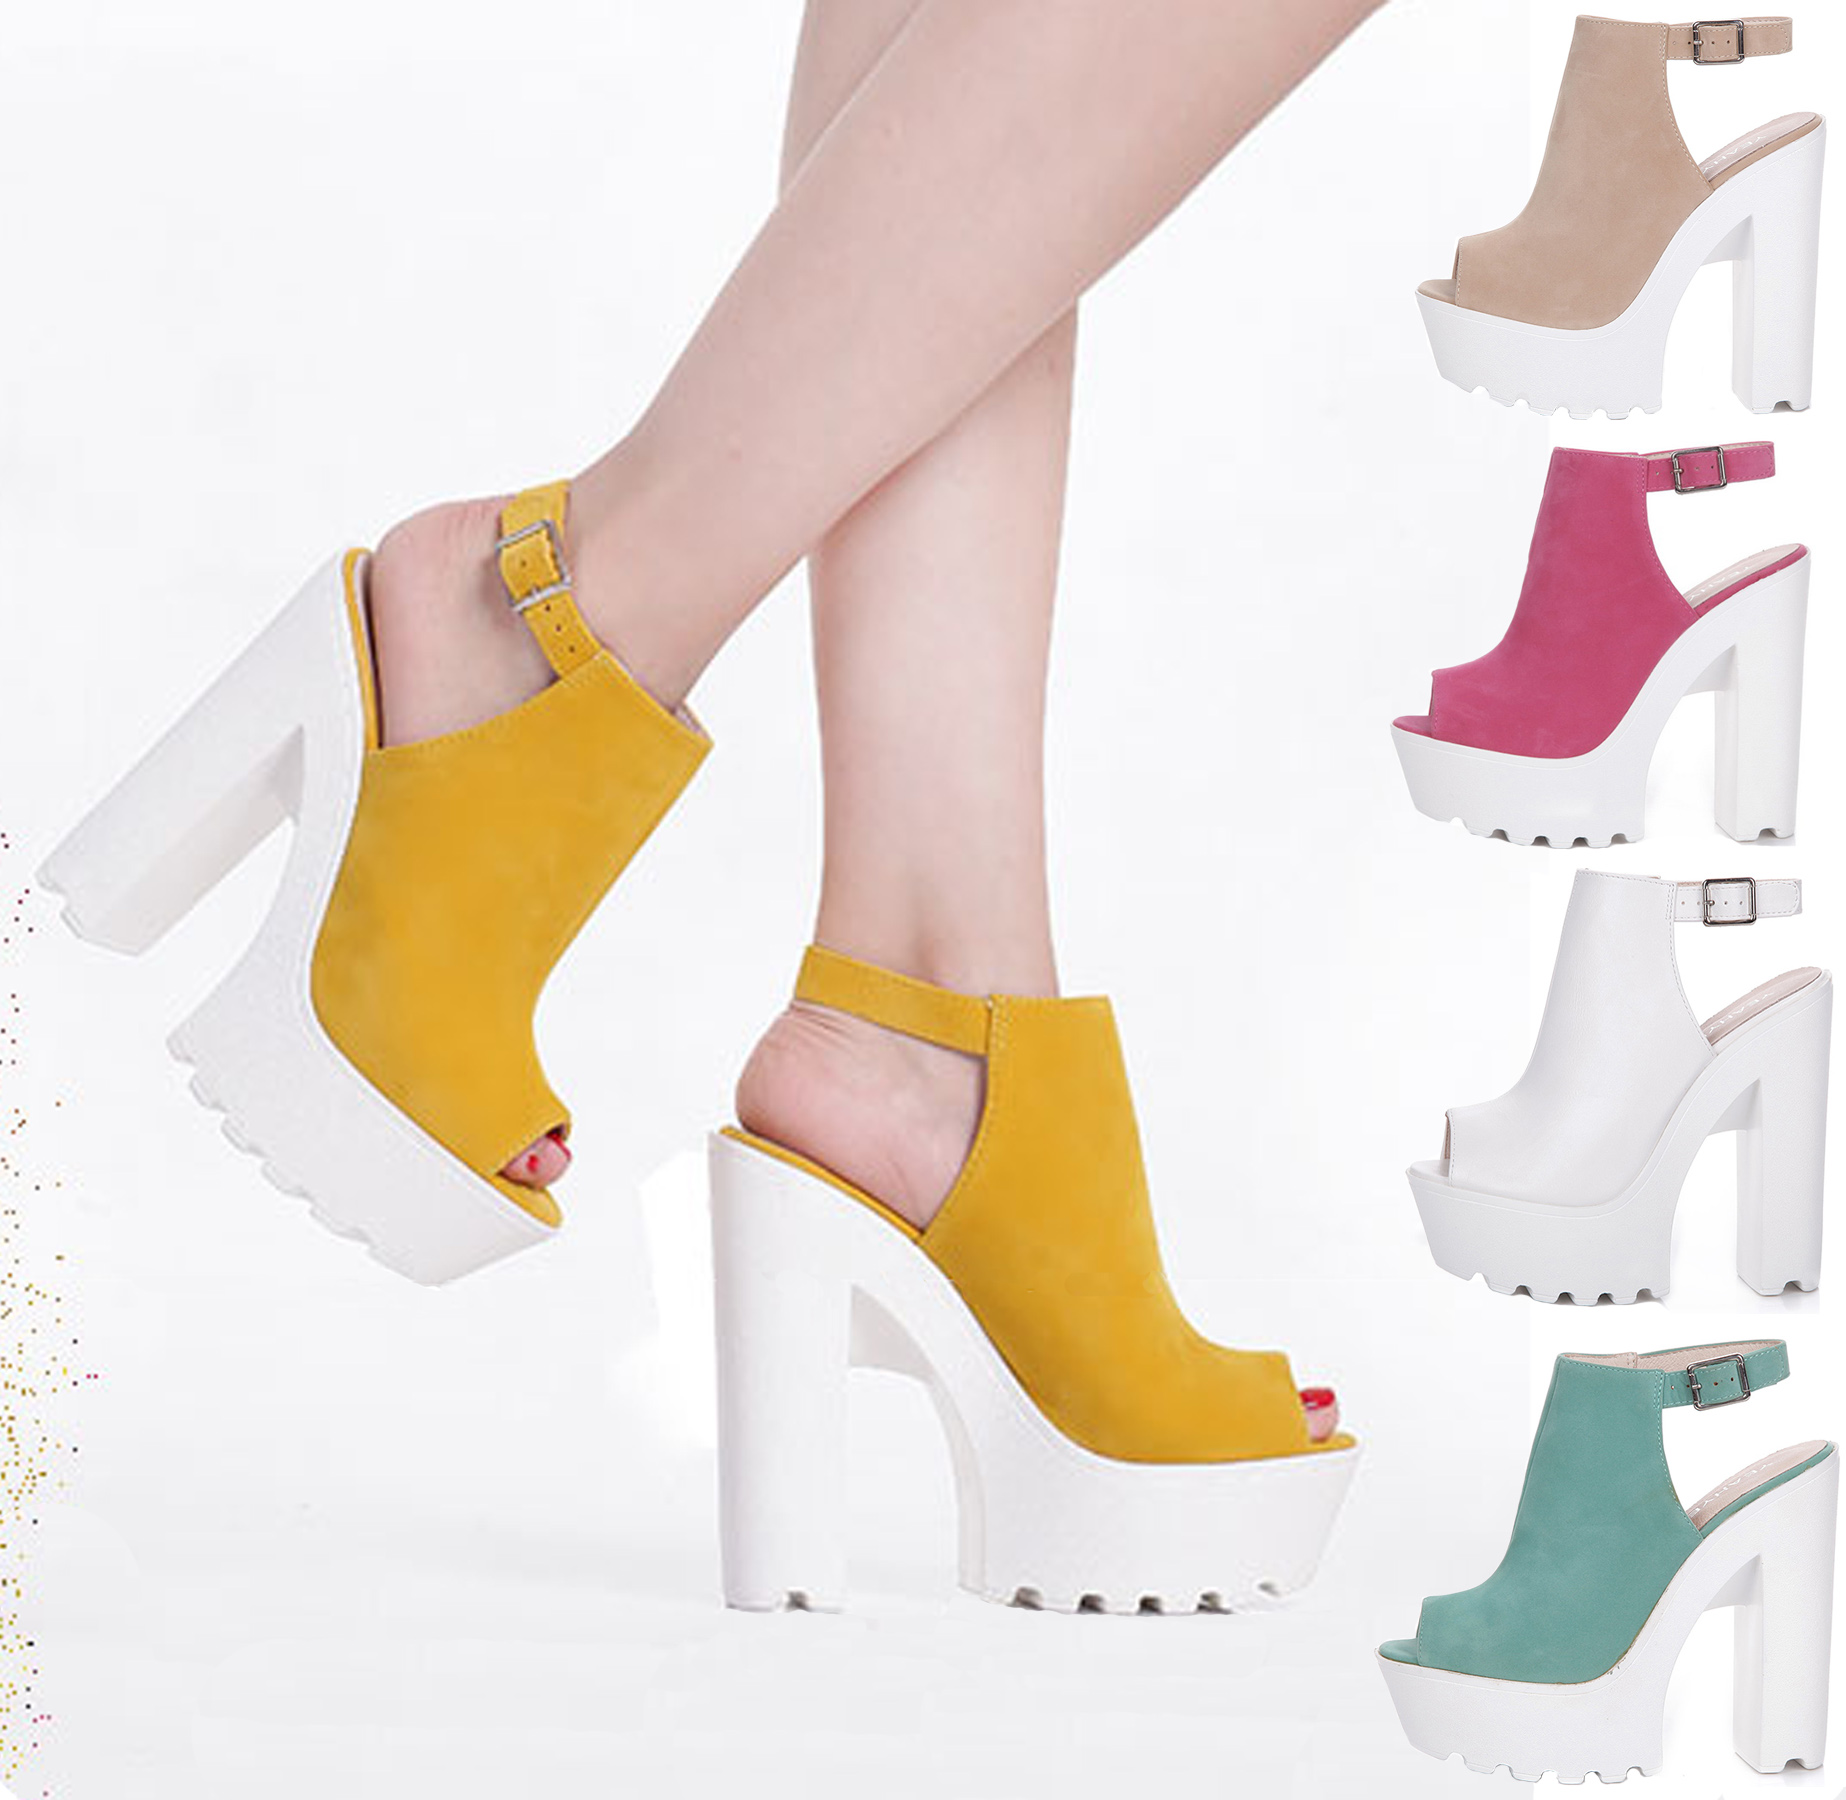 831834f9691a Brand New Fashion Stable White Thick heel platform open toe sexy high heels  cool Sandals boots 4 color comfortable party shoes